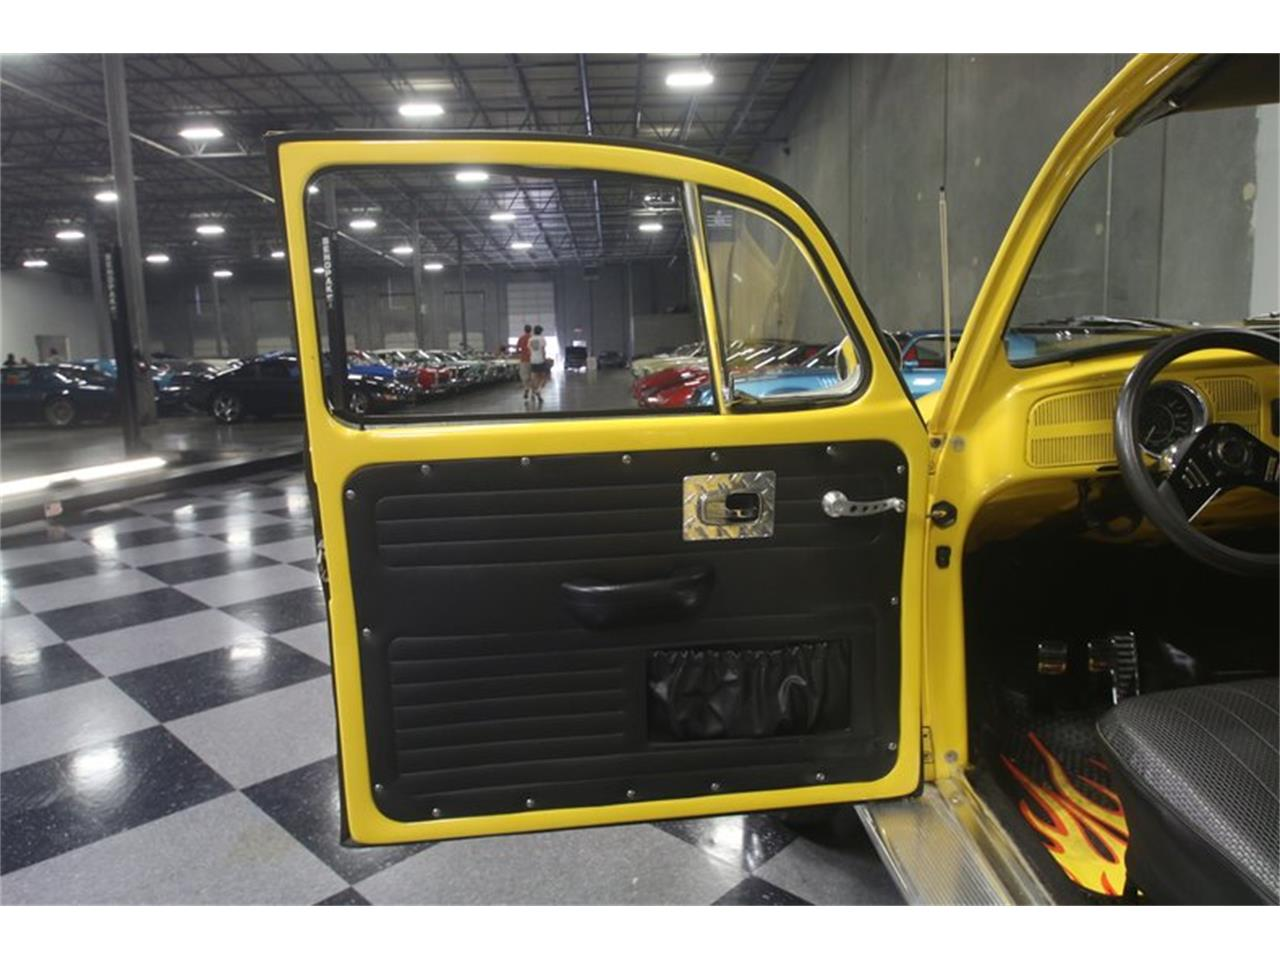 Large Picture of Classic '69 Volkswagen Baja Bug located in Georgia - $14,995.00 - N8PC